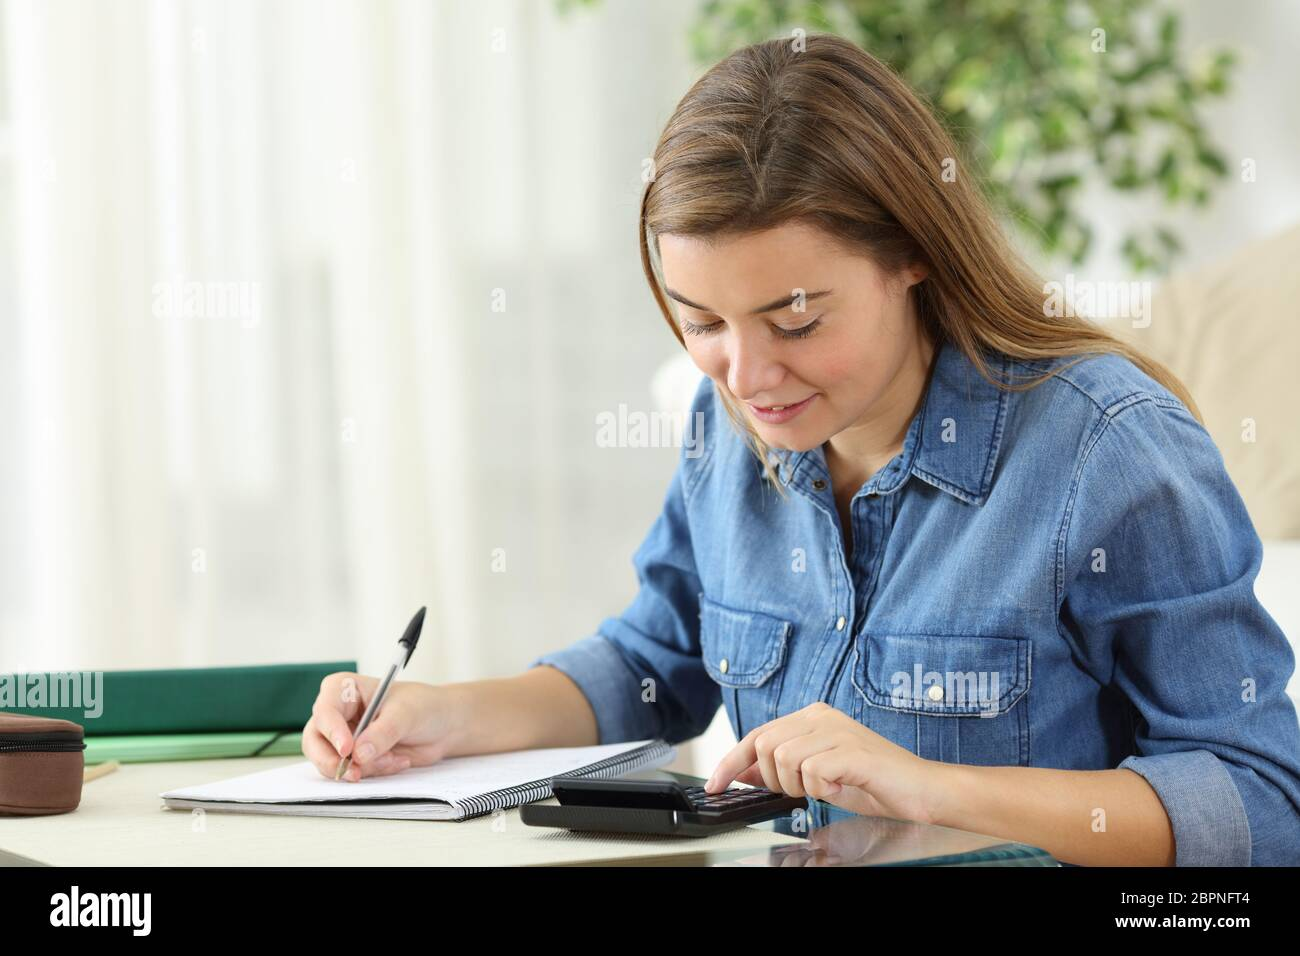 Student studying calculating with a calculator and handwriting notes siting on the floor in the living room at home Stock Photo